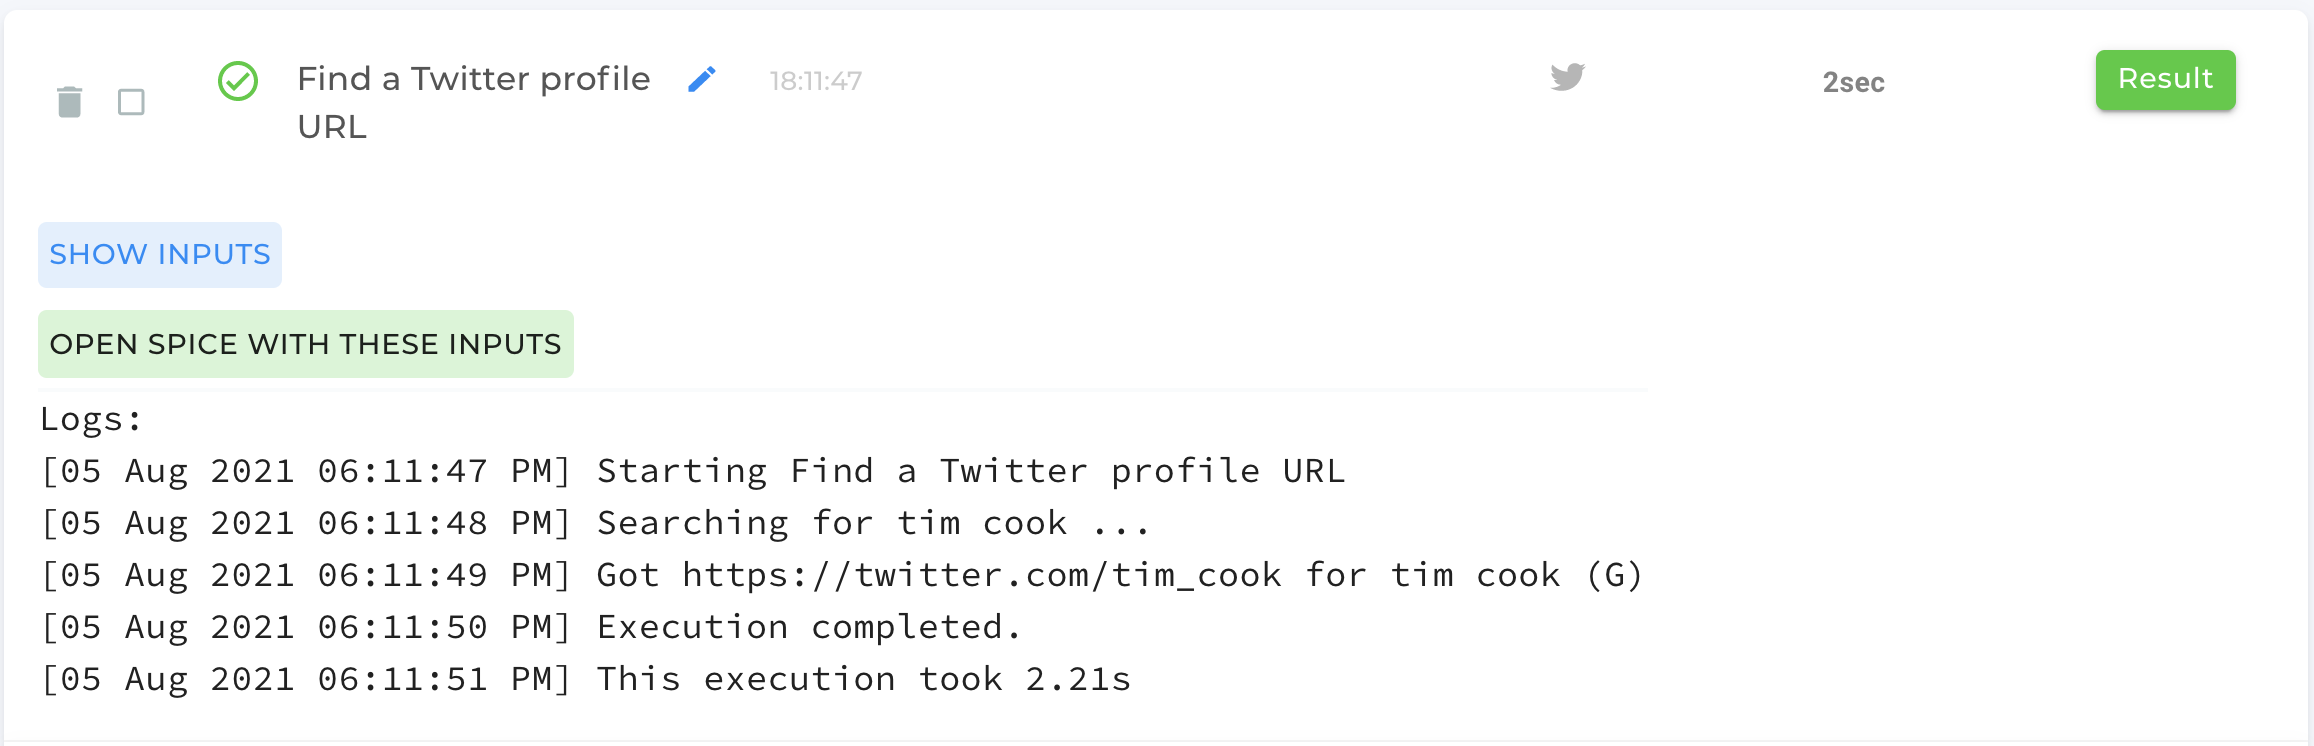 Find A Twitter Profile Automation Completed